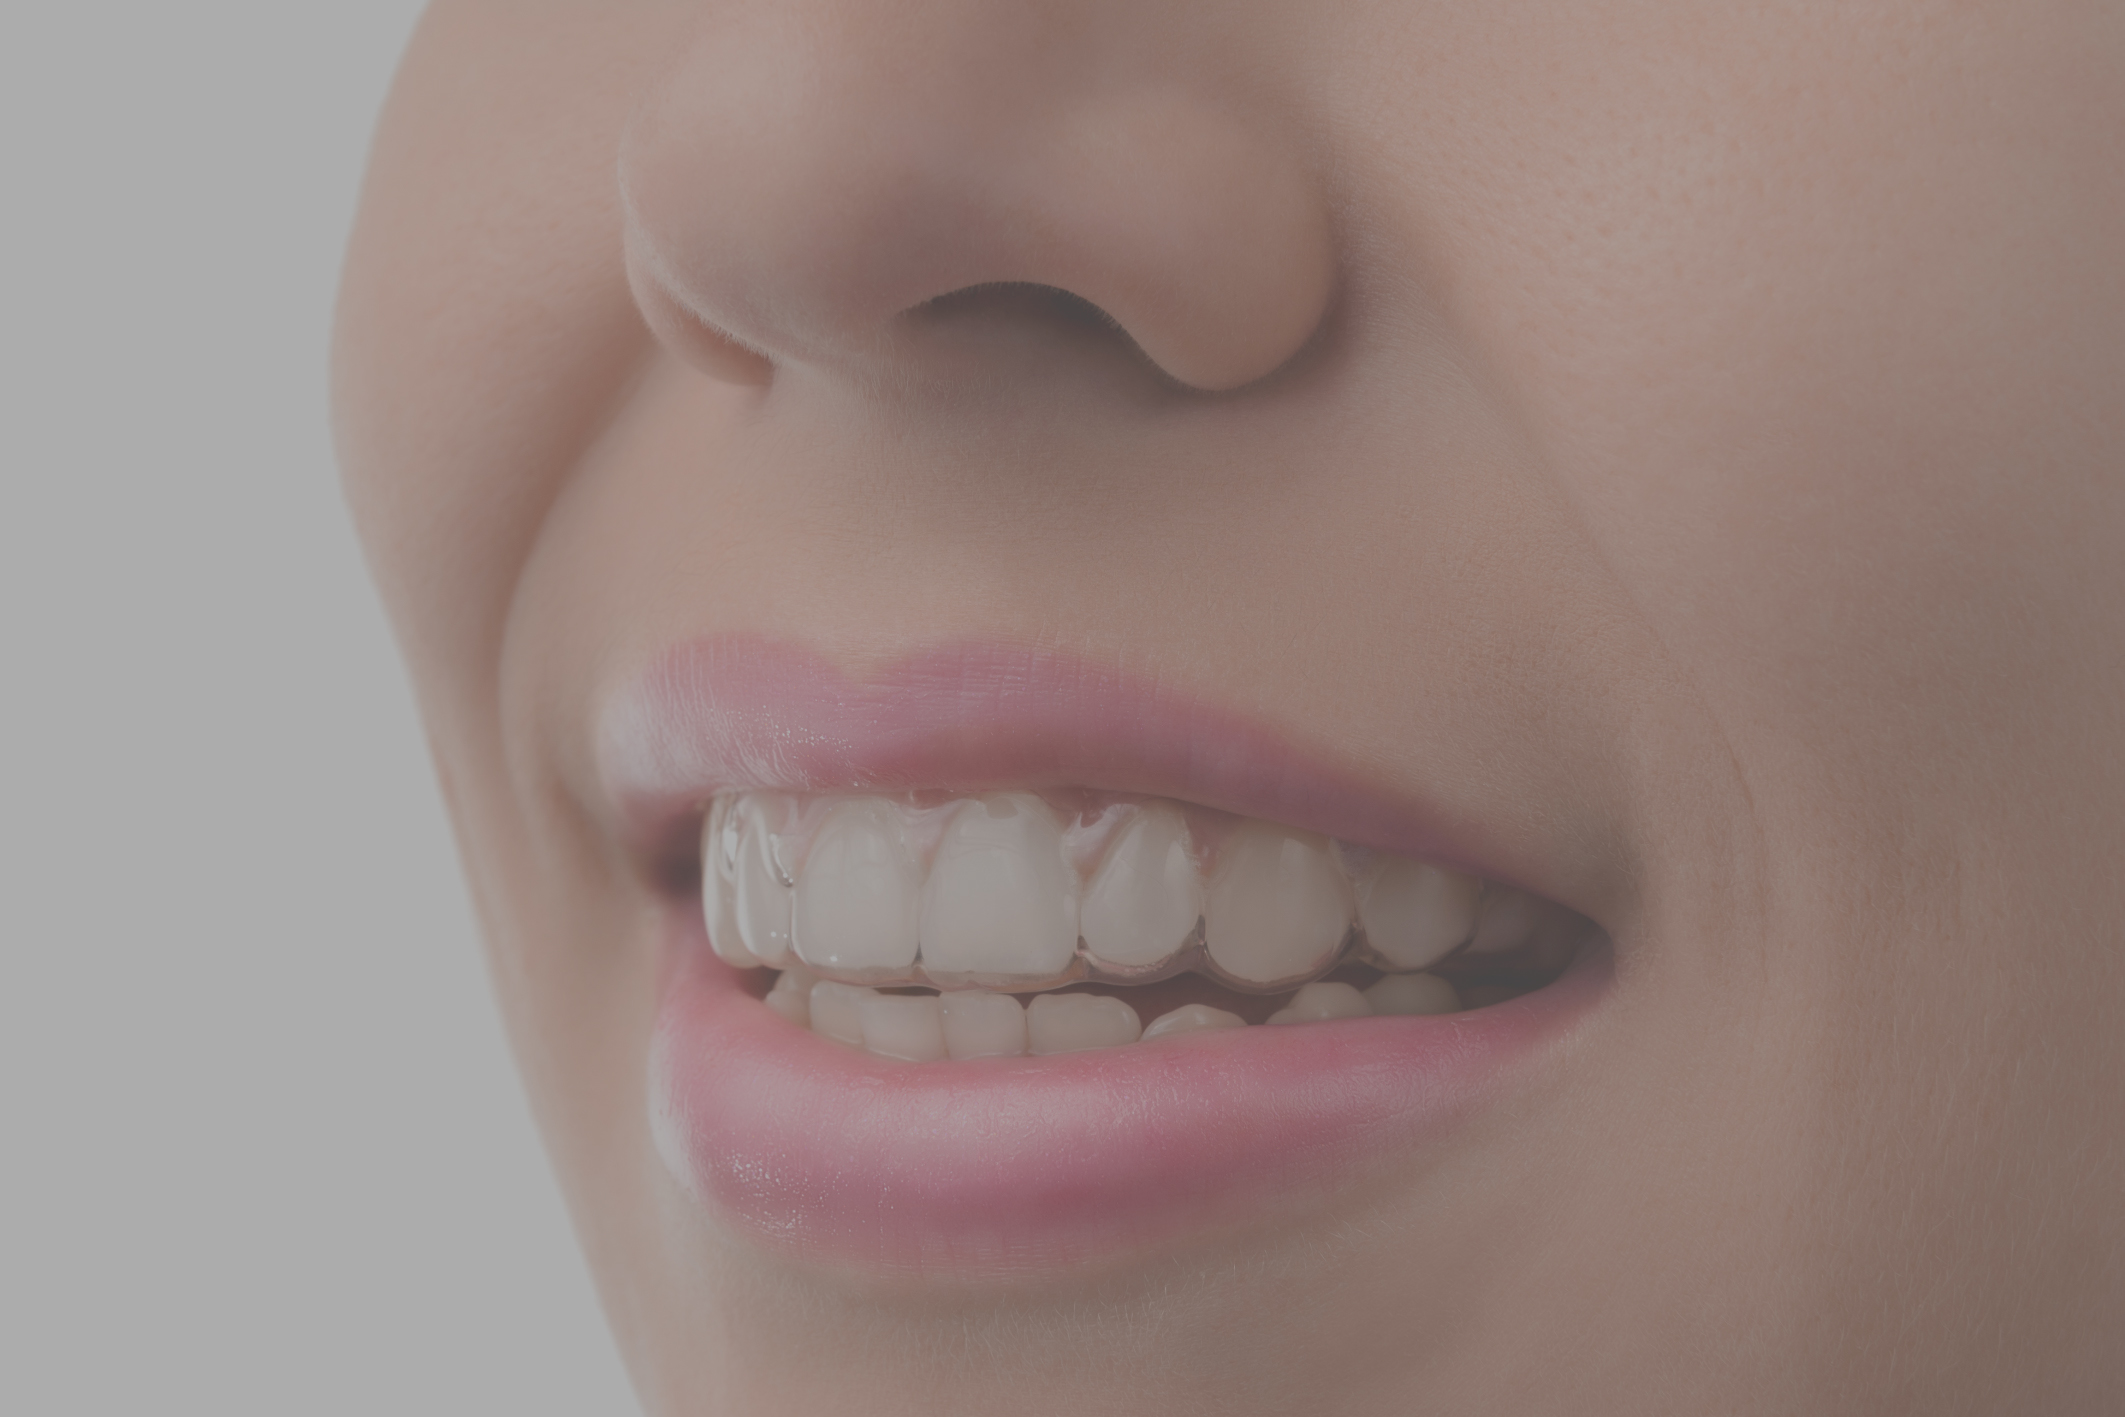 Aparatos Dentales Invisibles Invisalign Vs Normal Braces Why Choose Invisalign